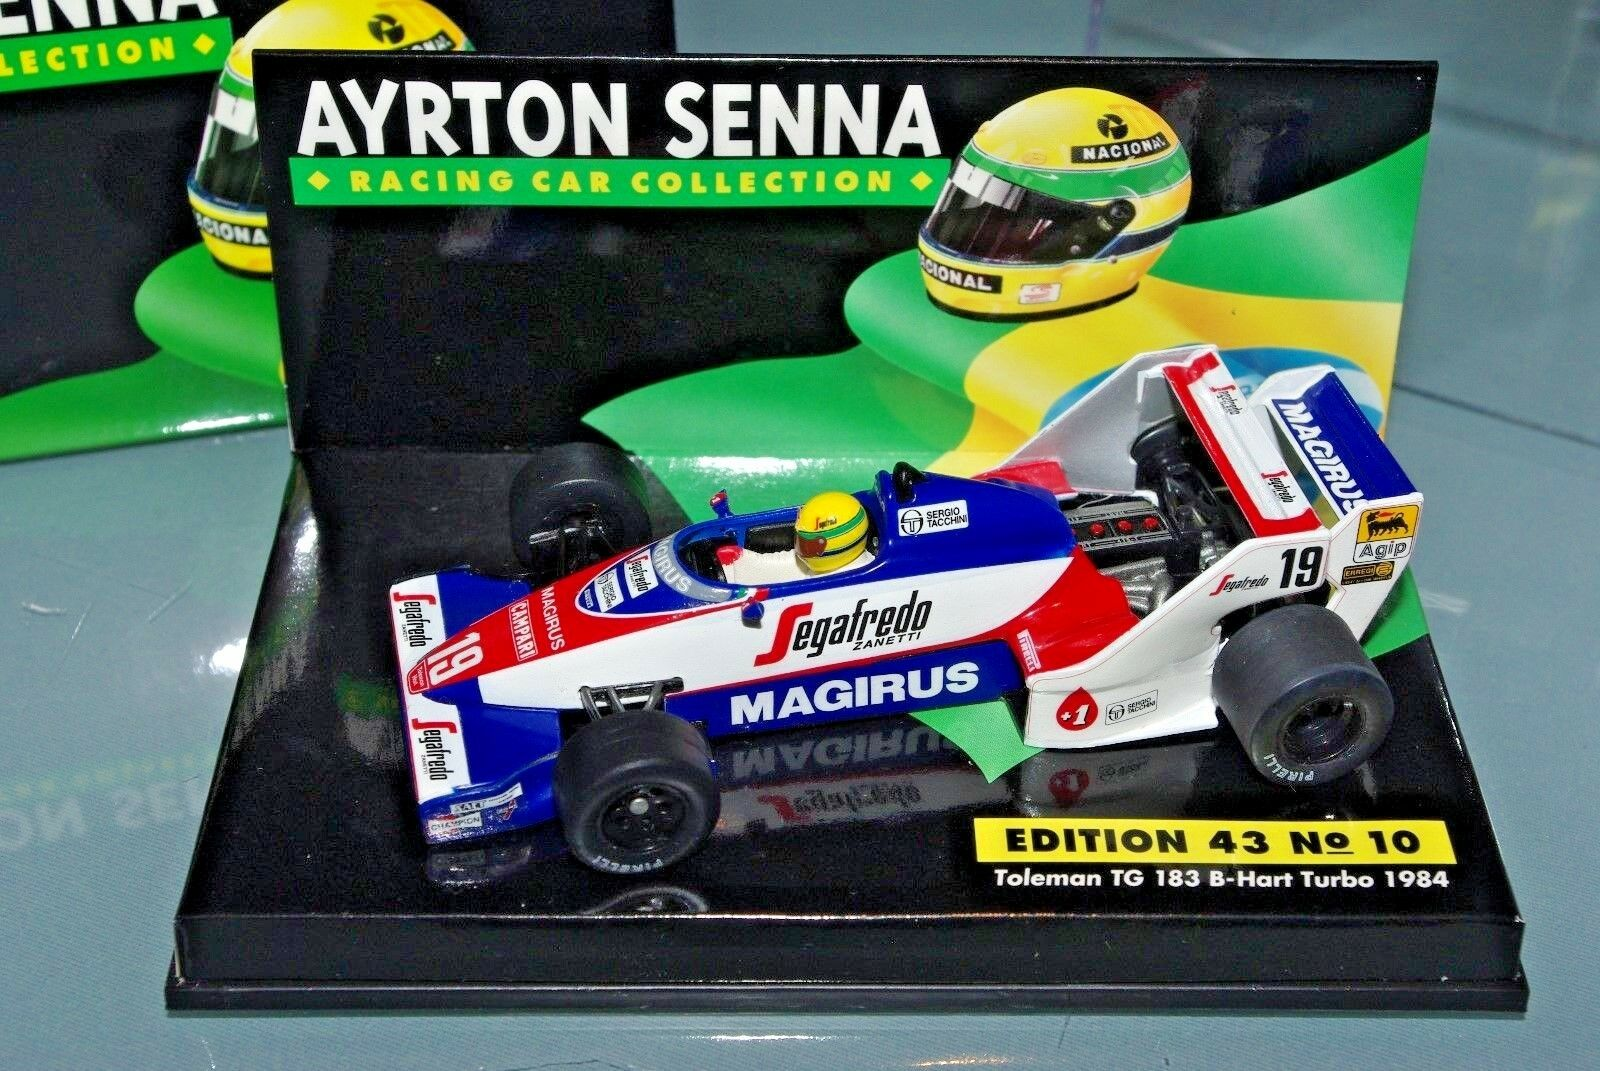 Minichamps F1 1 43 TOLEMAN TG183 B-HART TURBO 1984 - AYRTON SENNA COLLECTION  10